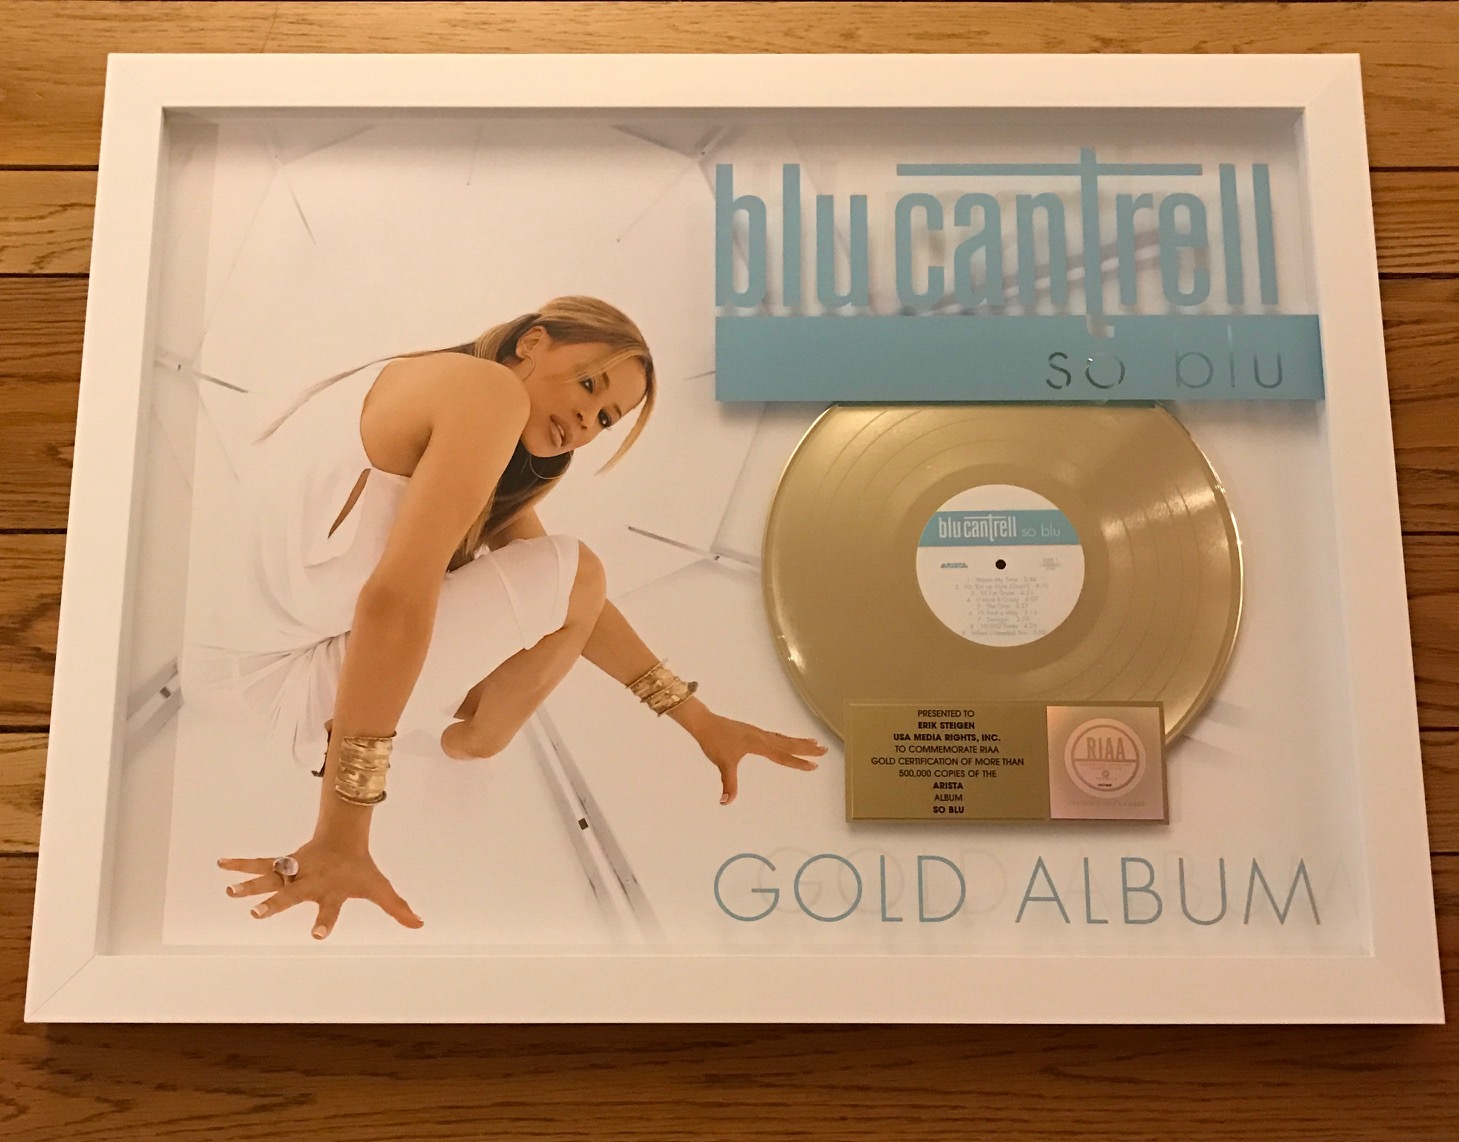 Blu Cantrell So Blu plaque.jpg